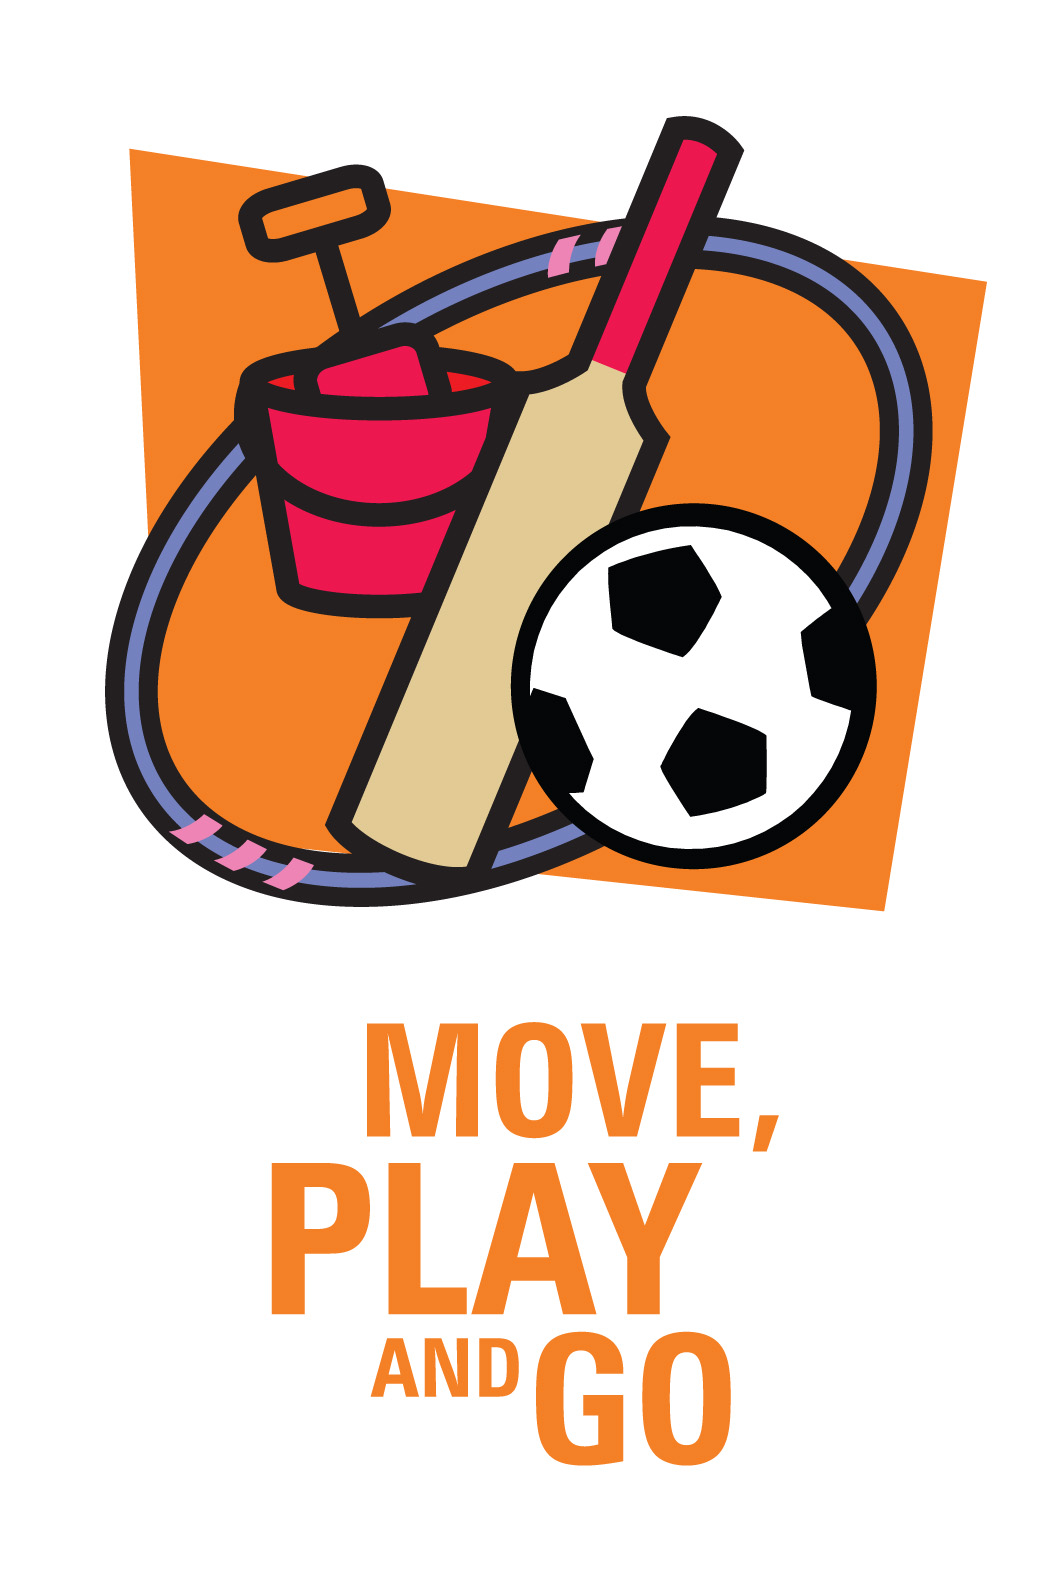 Move Play and Go